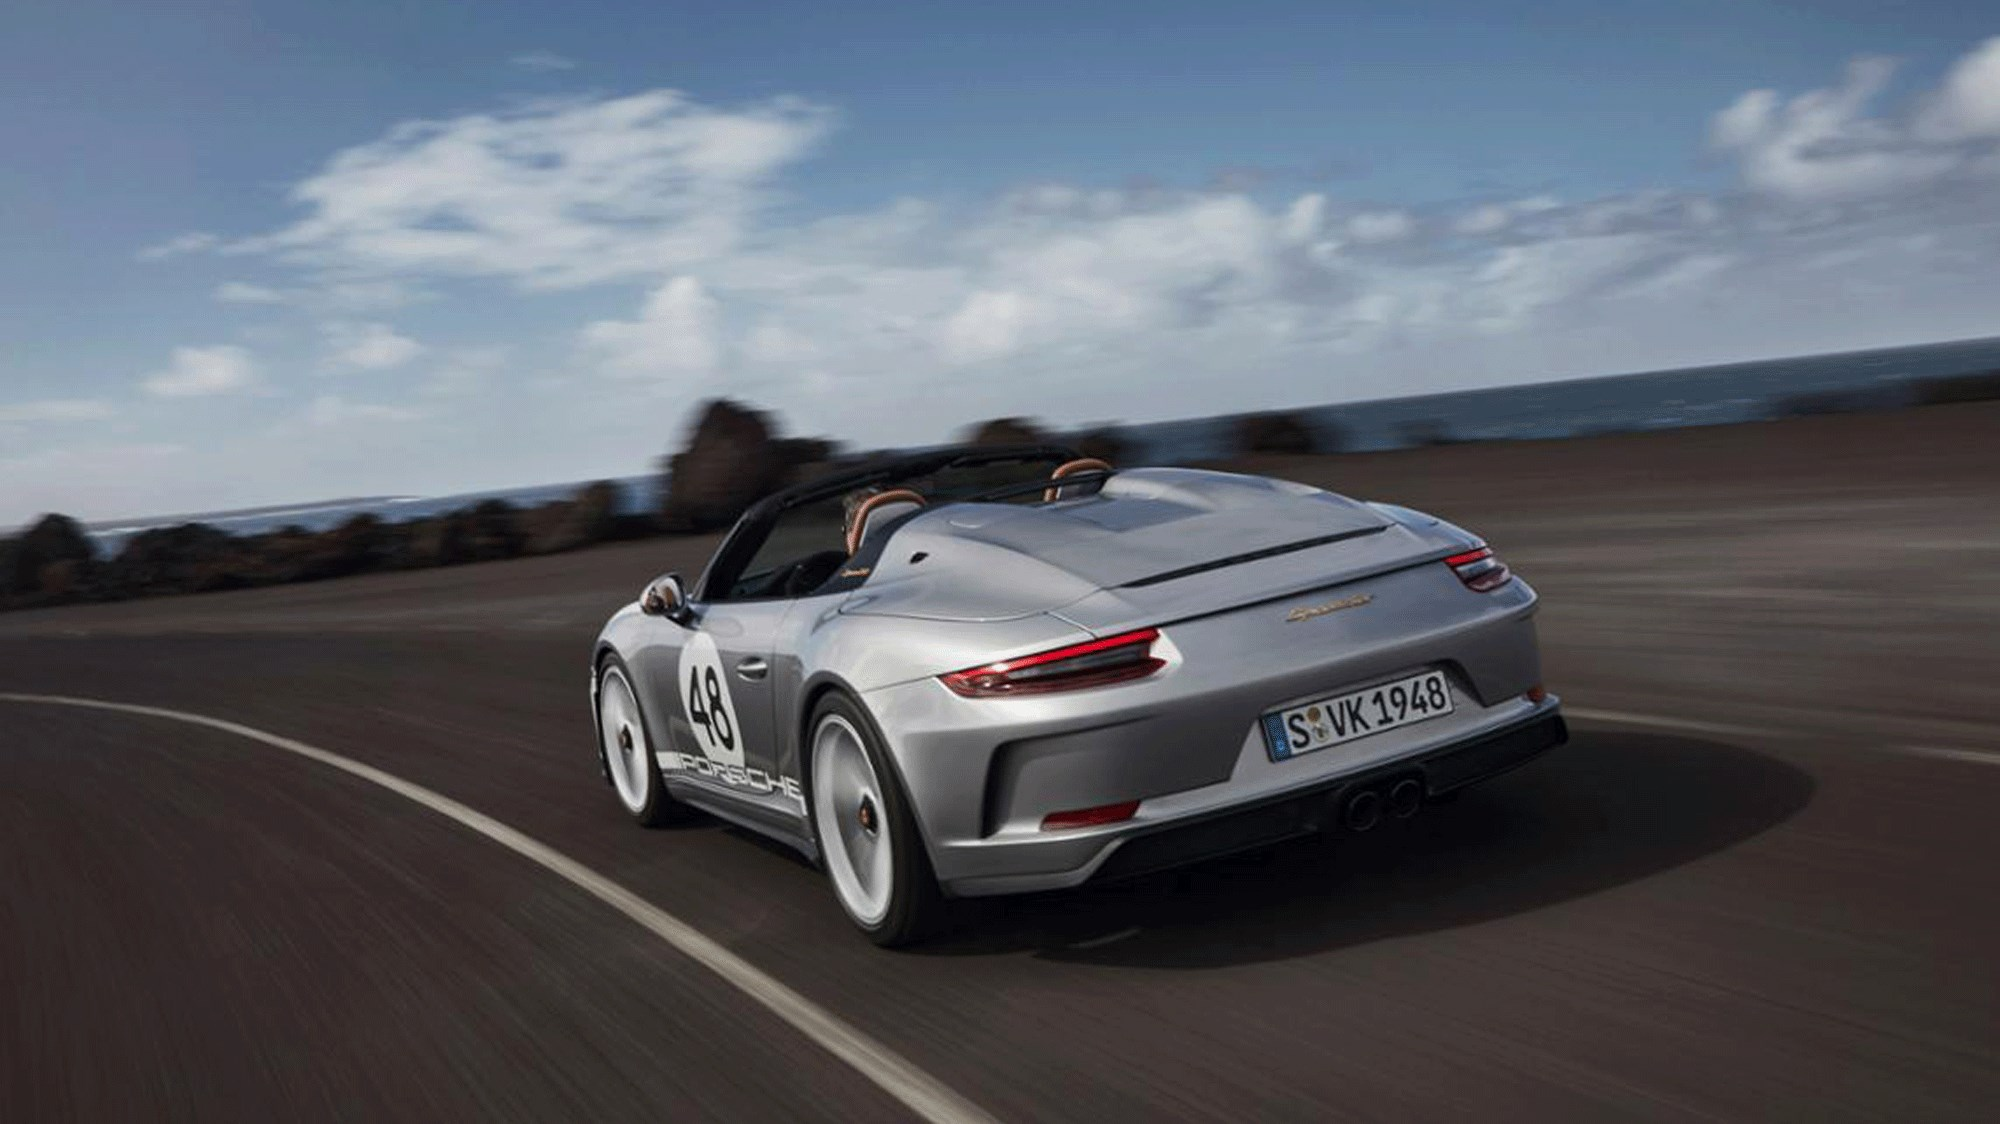 Porsche 911 Speedster Uk Specs And Price Of Limited 9912